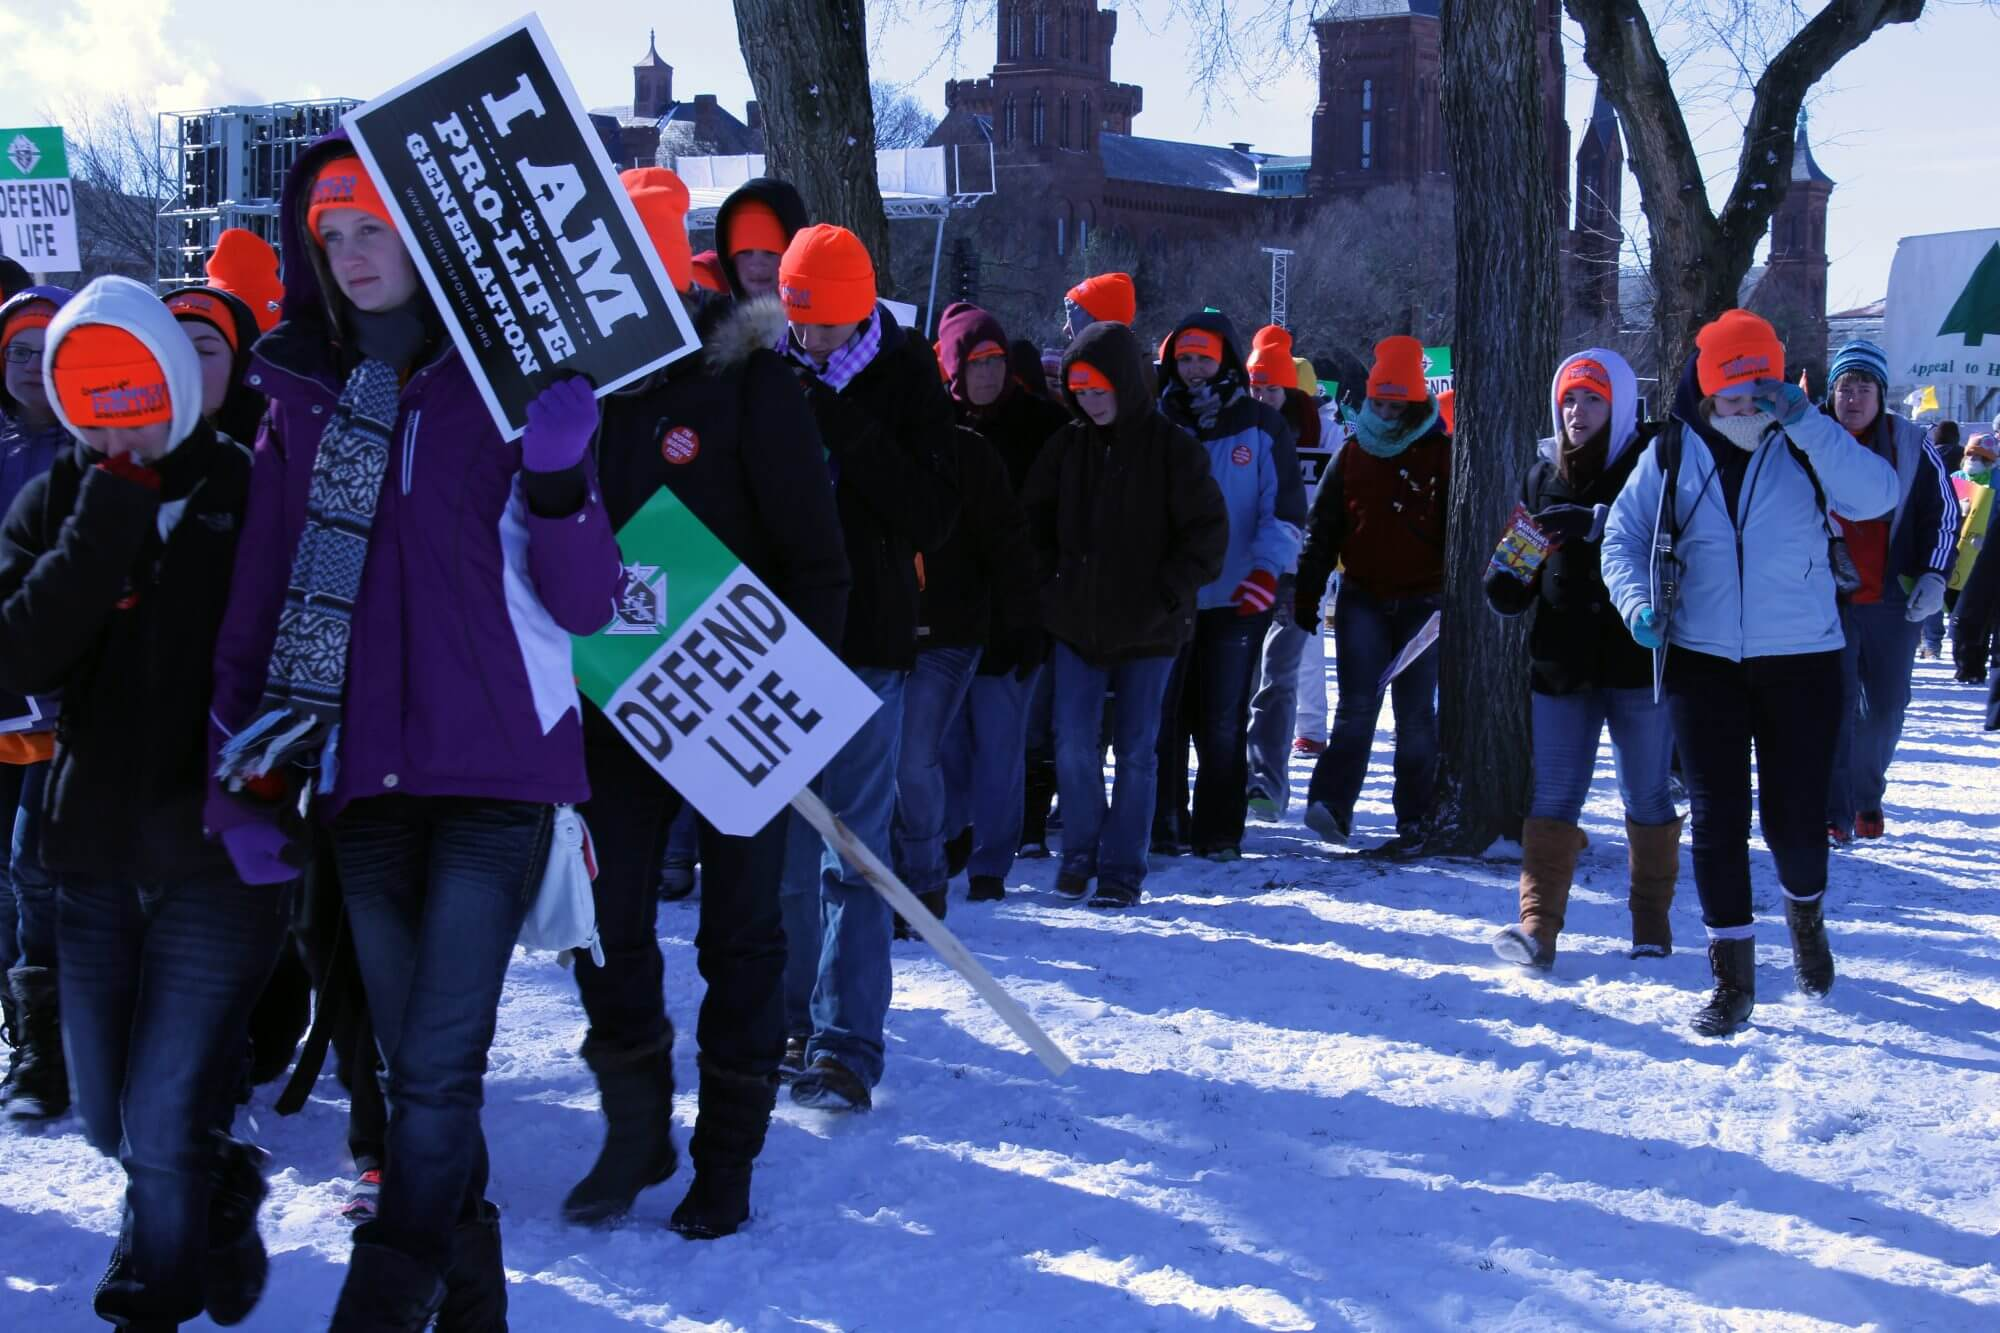 Slideshow: March for Life attracts thousands despite freezing temperatures